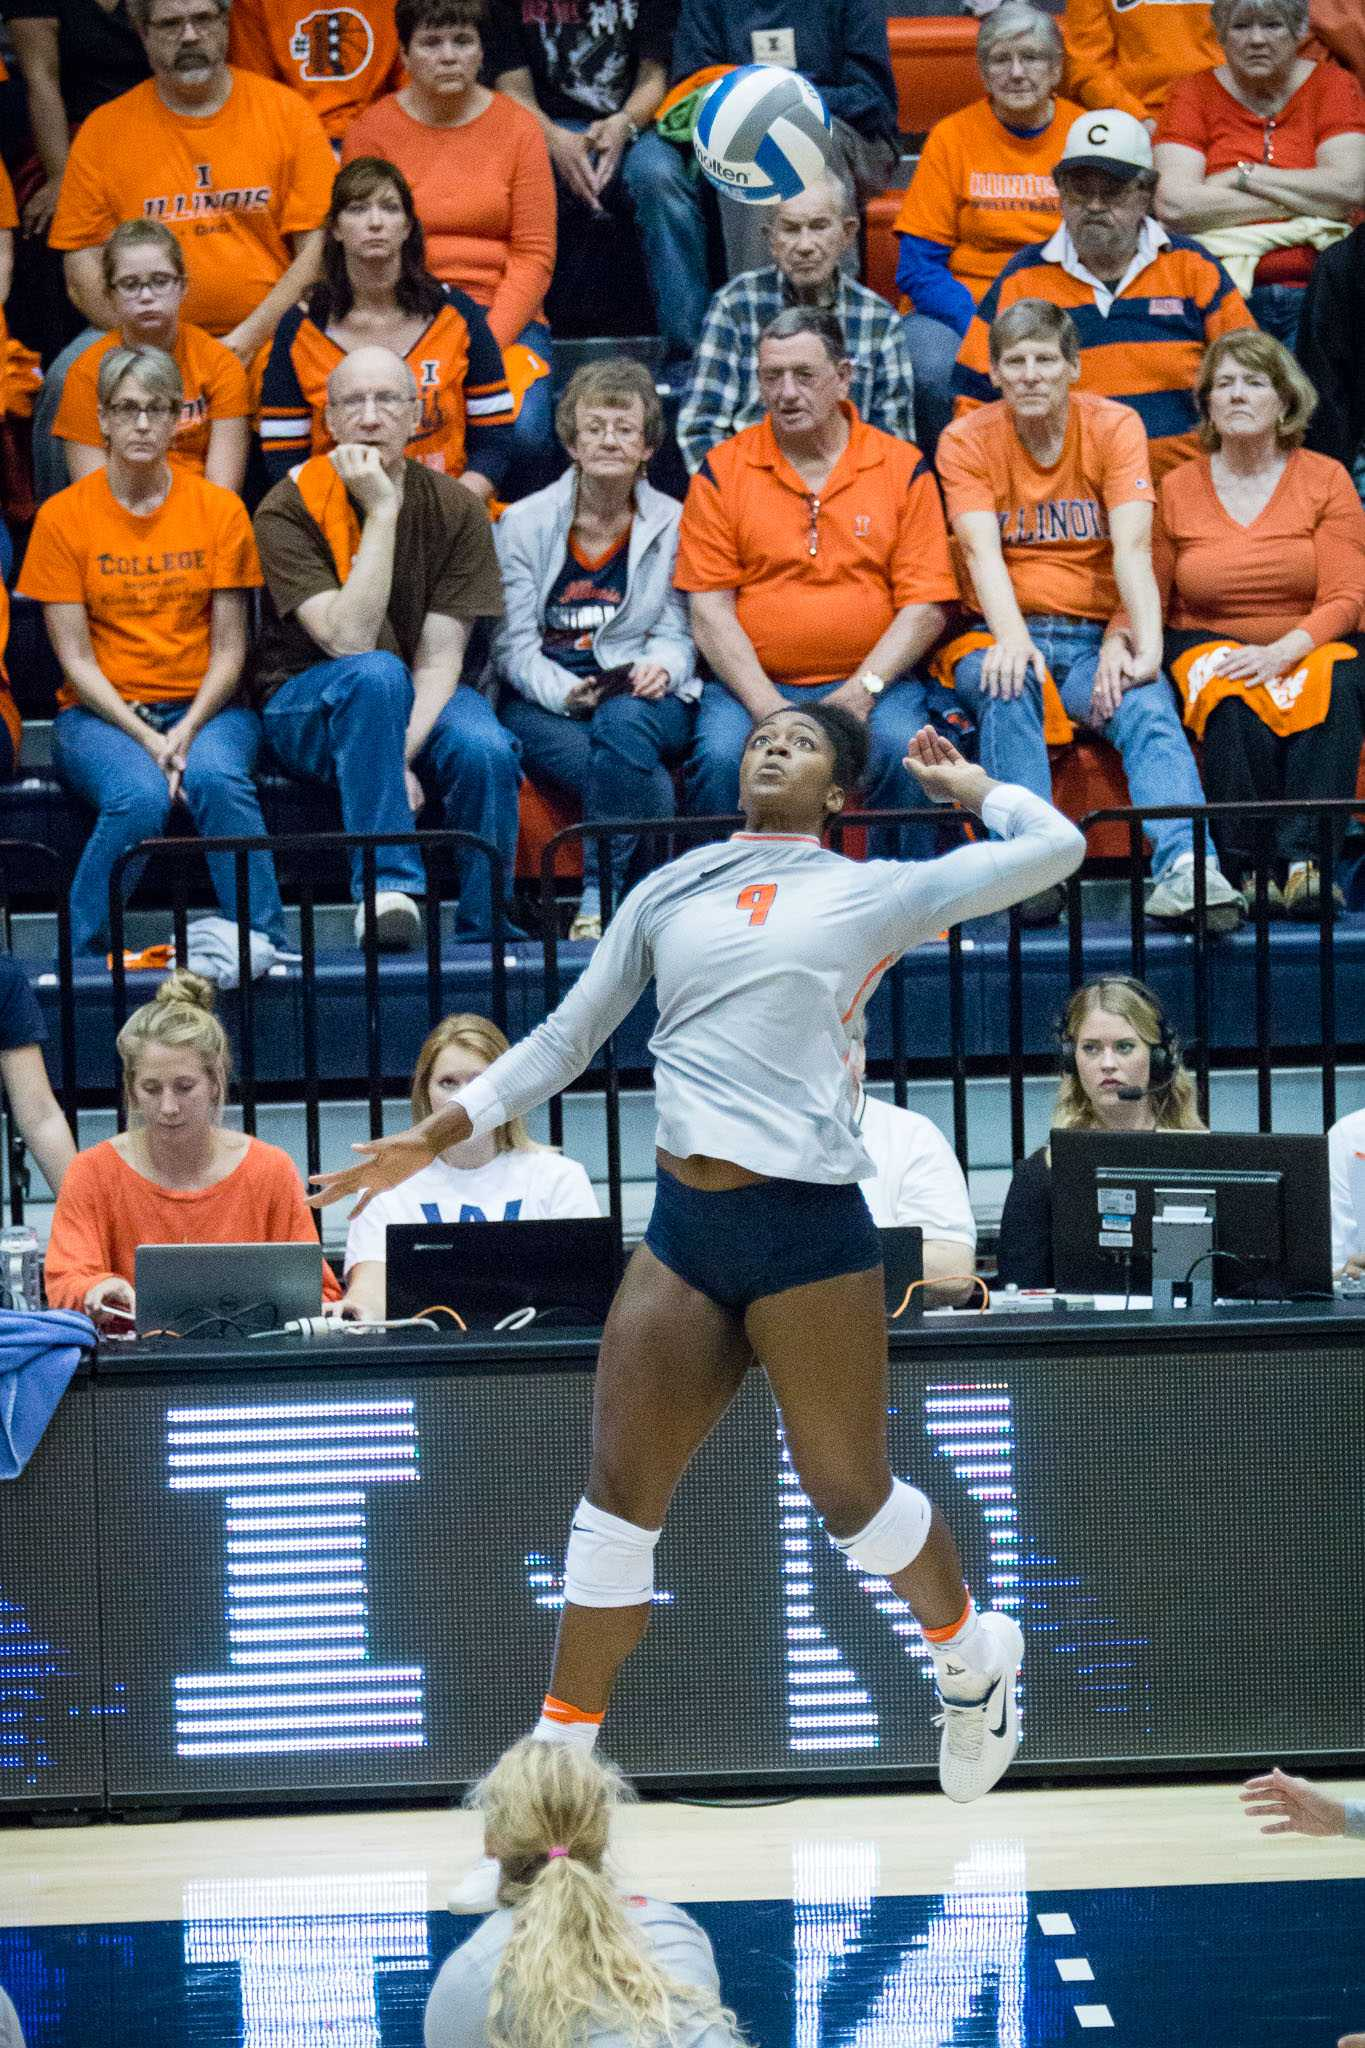 Illinois' Naya Crittenden gets ready to hit the ball during the match against Northwestern at Huff Hall on Saturday, October 15. The Illini won 3-0.